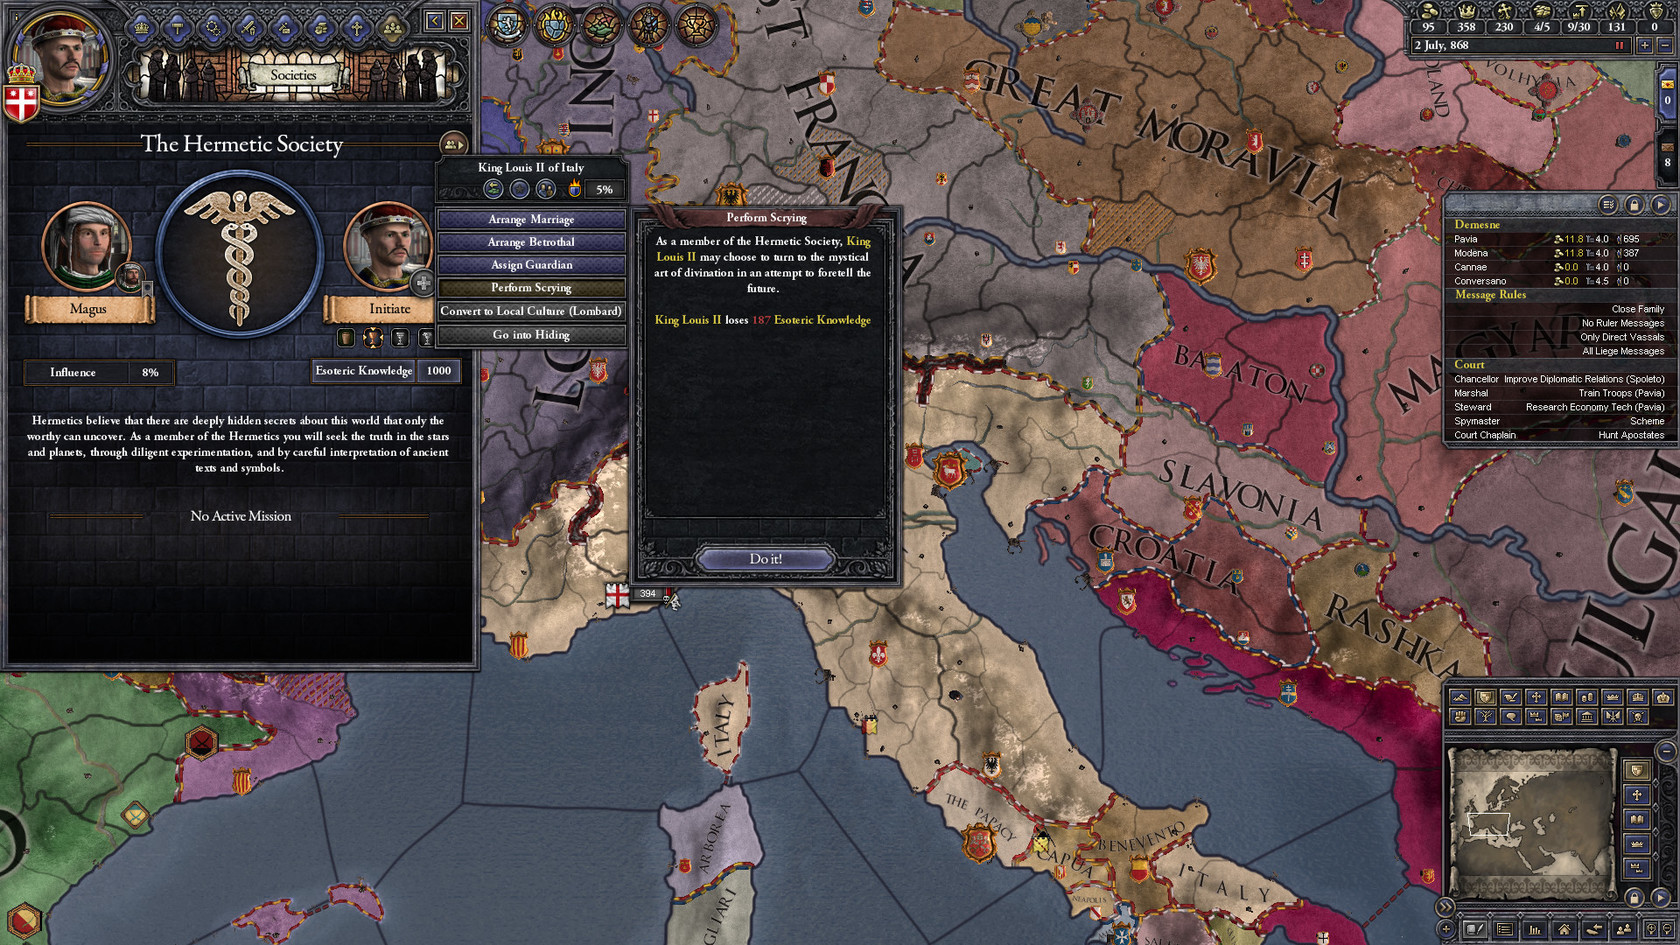 Ck2 Game Of Thrones Cheats - Idee per la decorazione di interni